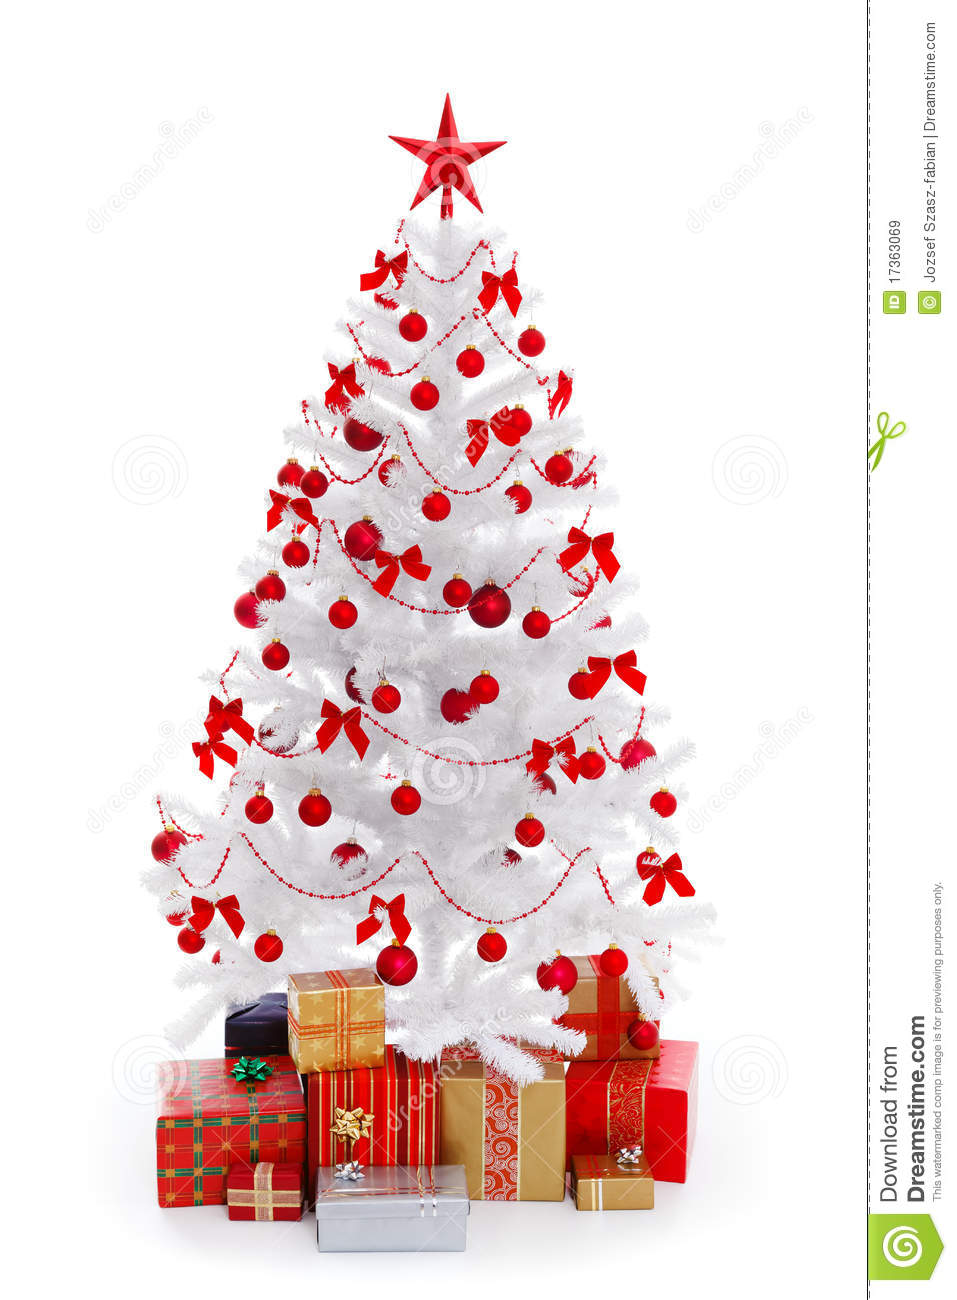 White Christmas Tree With Gifts And Red Decoration Stock Image